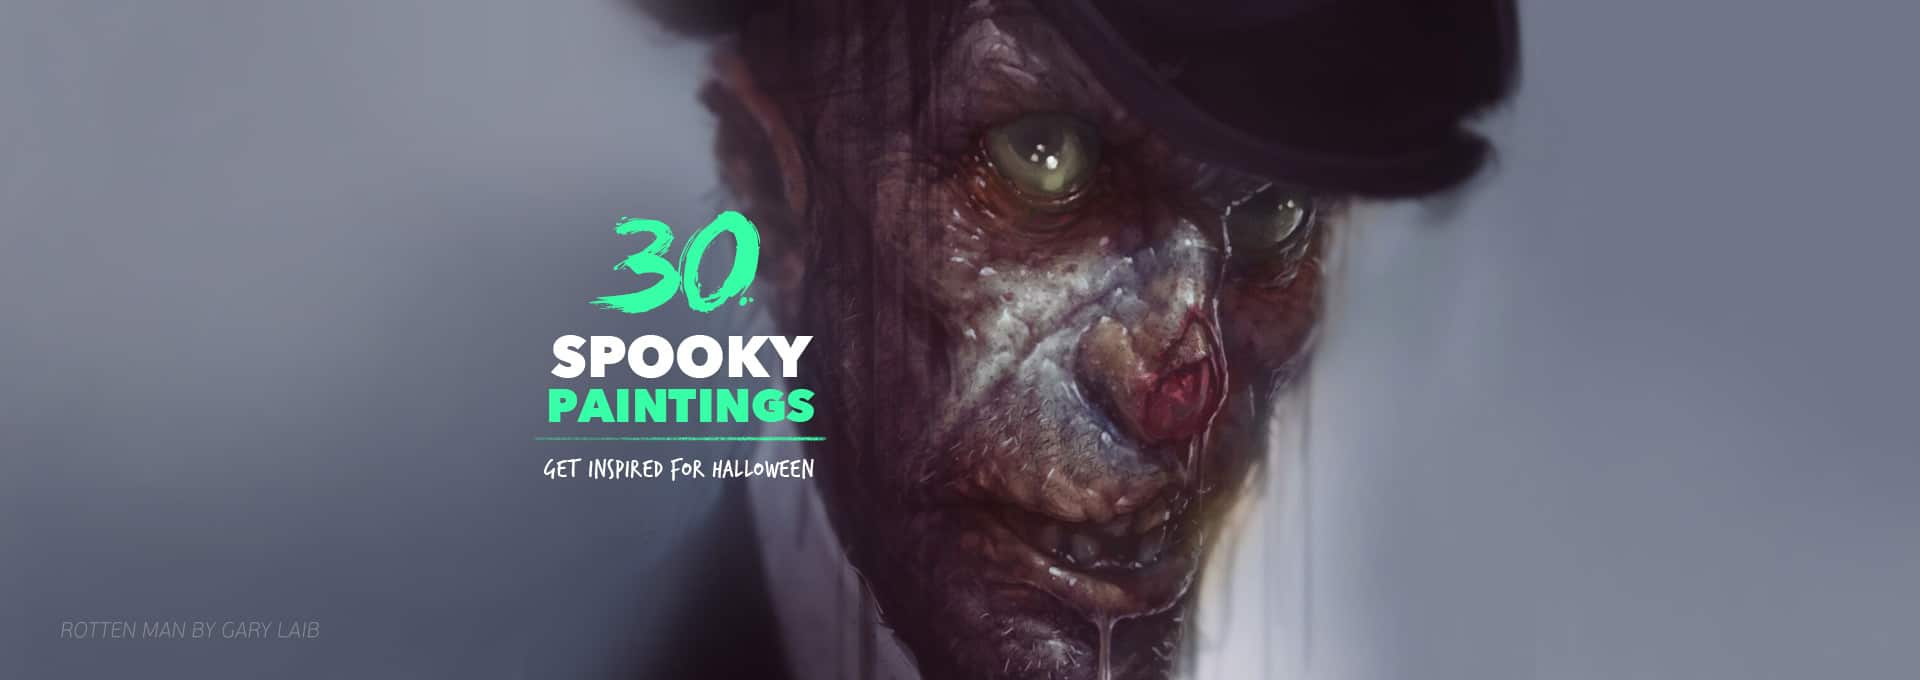 30 Spooky Digital Paintings - Paintable